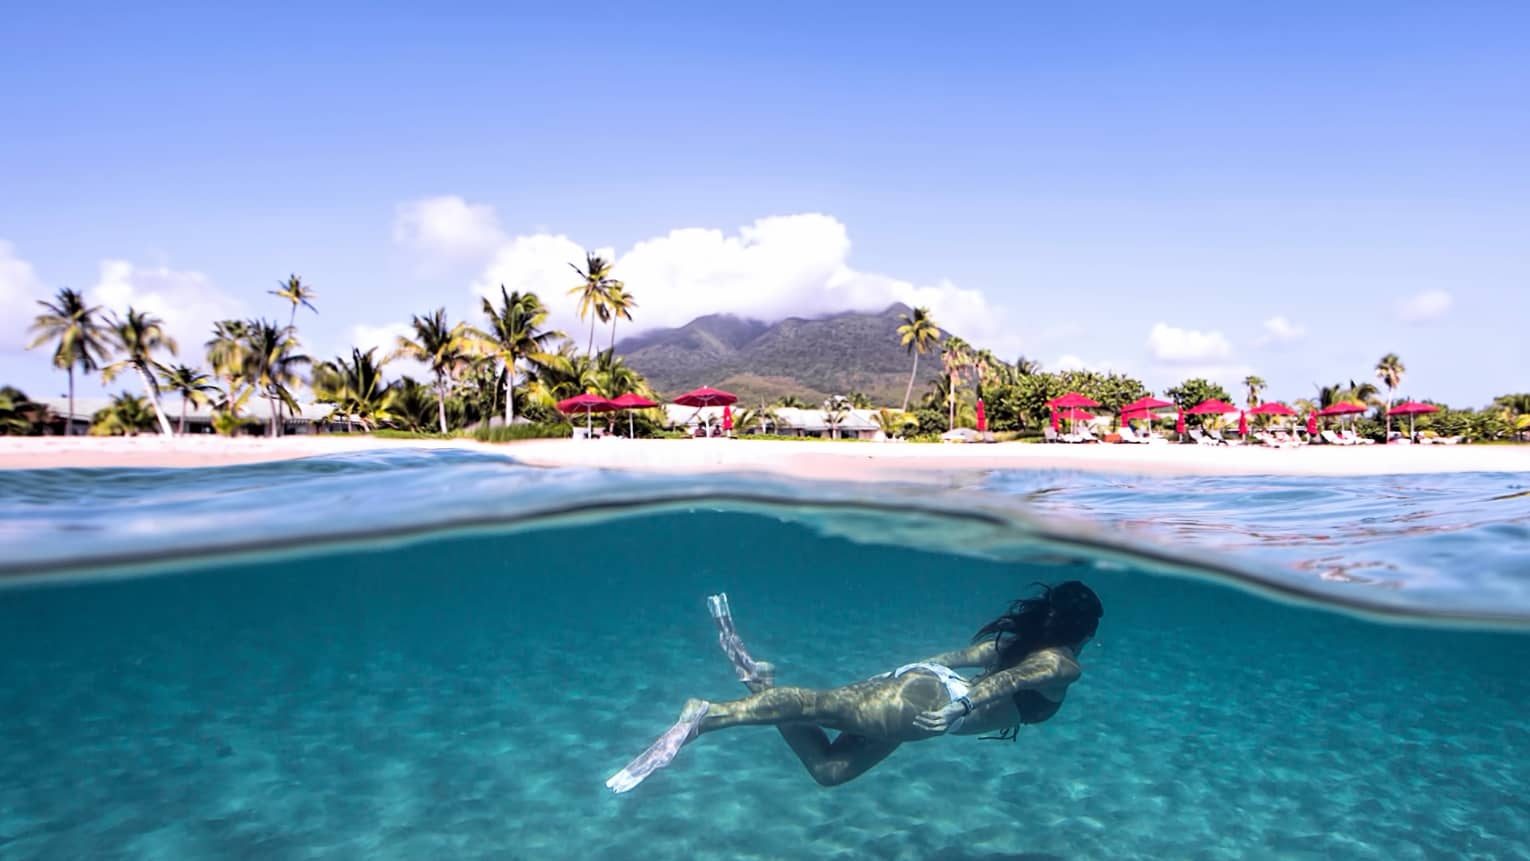 Underwater view of woman swimming with flippers, beach and resort on shore above